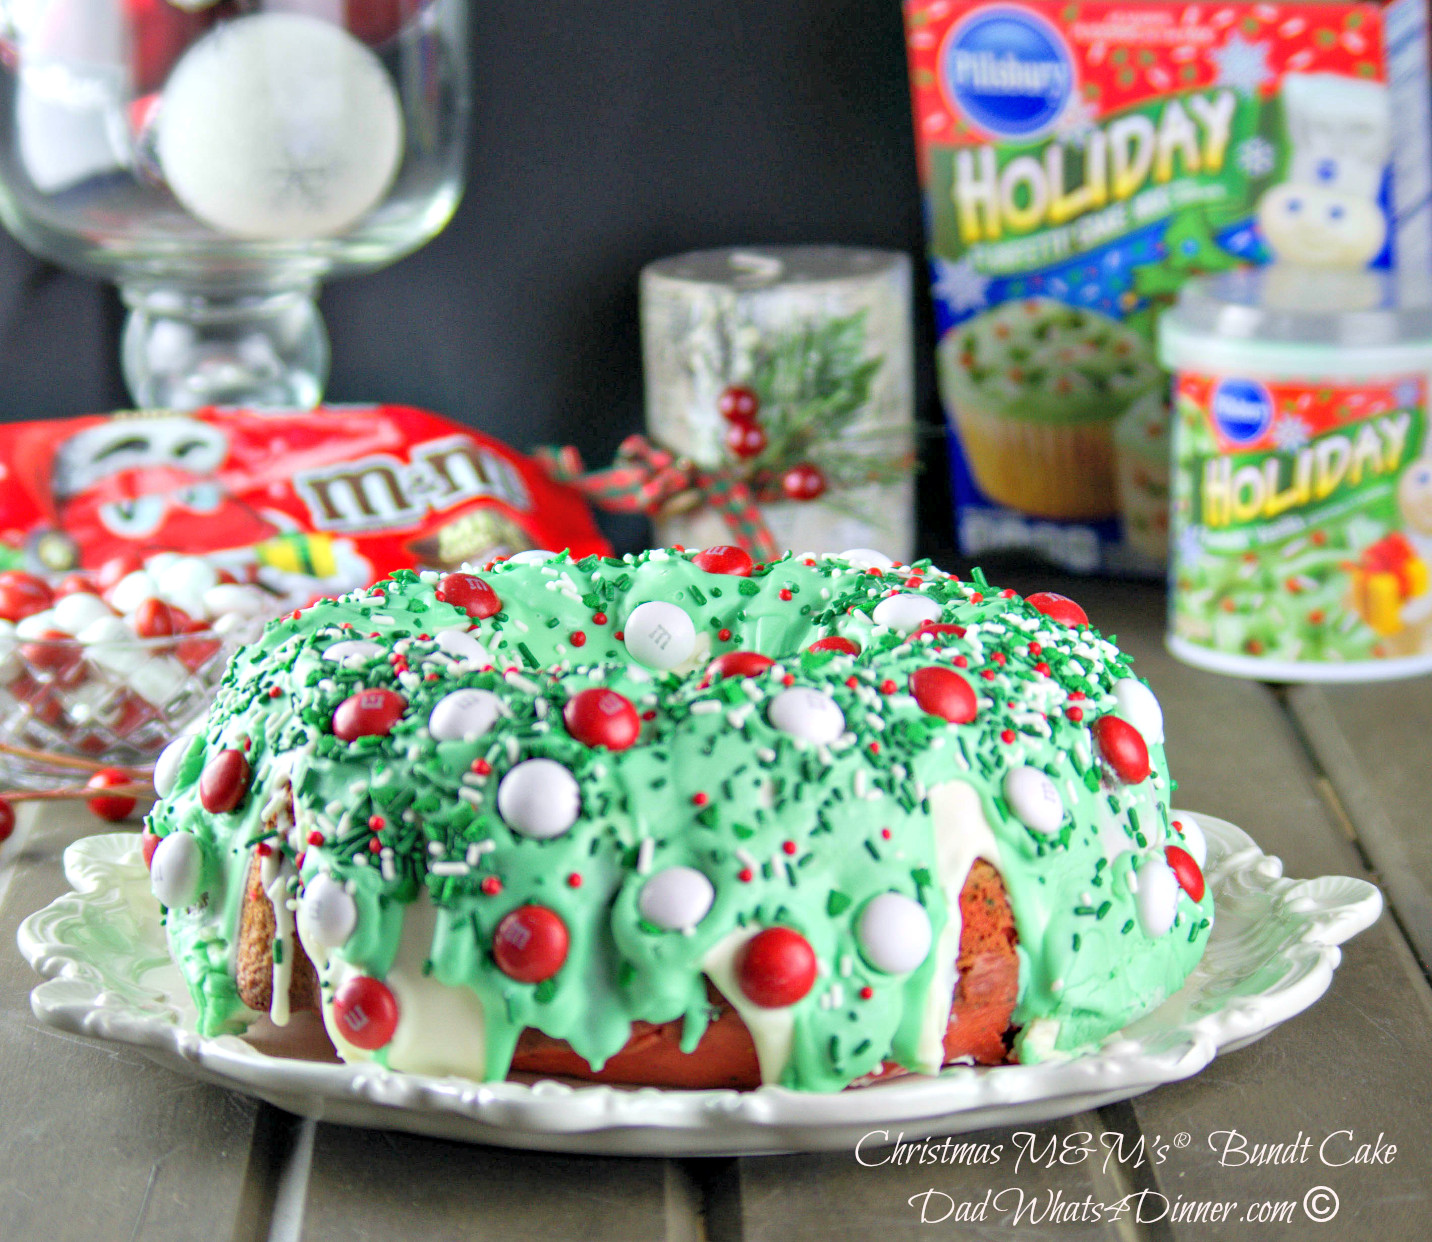 Christmas Bundt Cake Recipes  Christmas Bundt Cake Dad Whats 4 Dinner